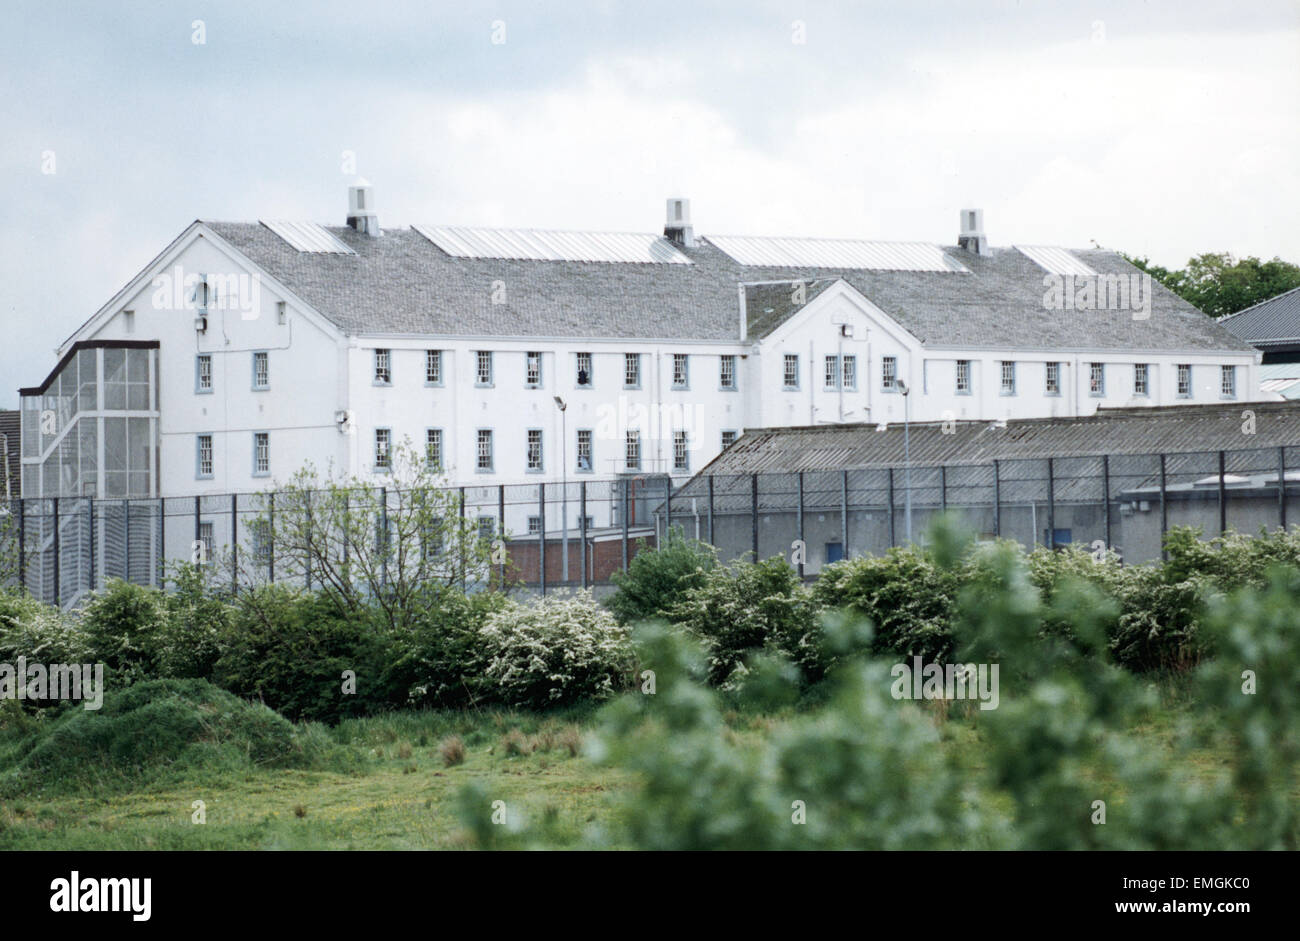 View of Polmont Young Offenders Institution in Reddingmuirhead, Falkirk, the largest of its kind in Scotland. Circa - Stock Image